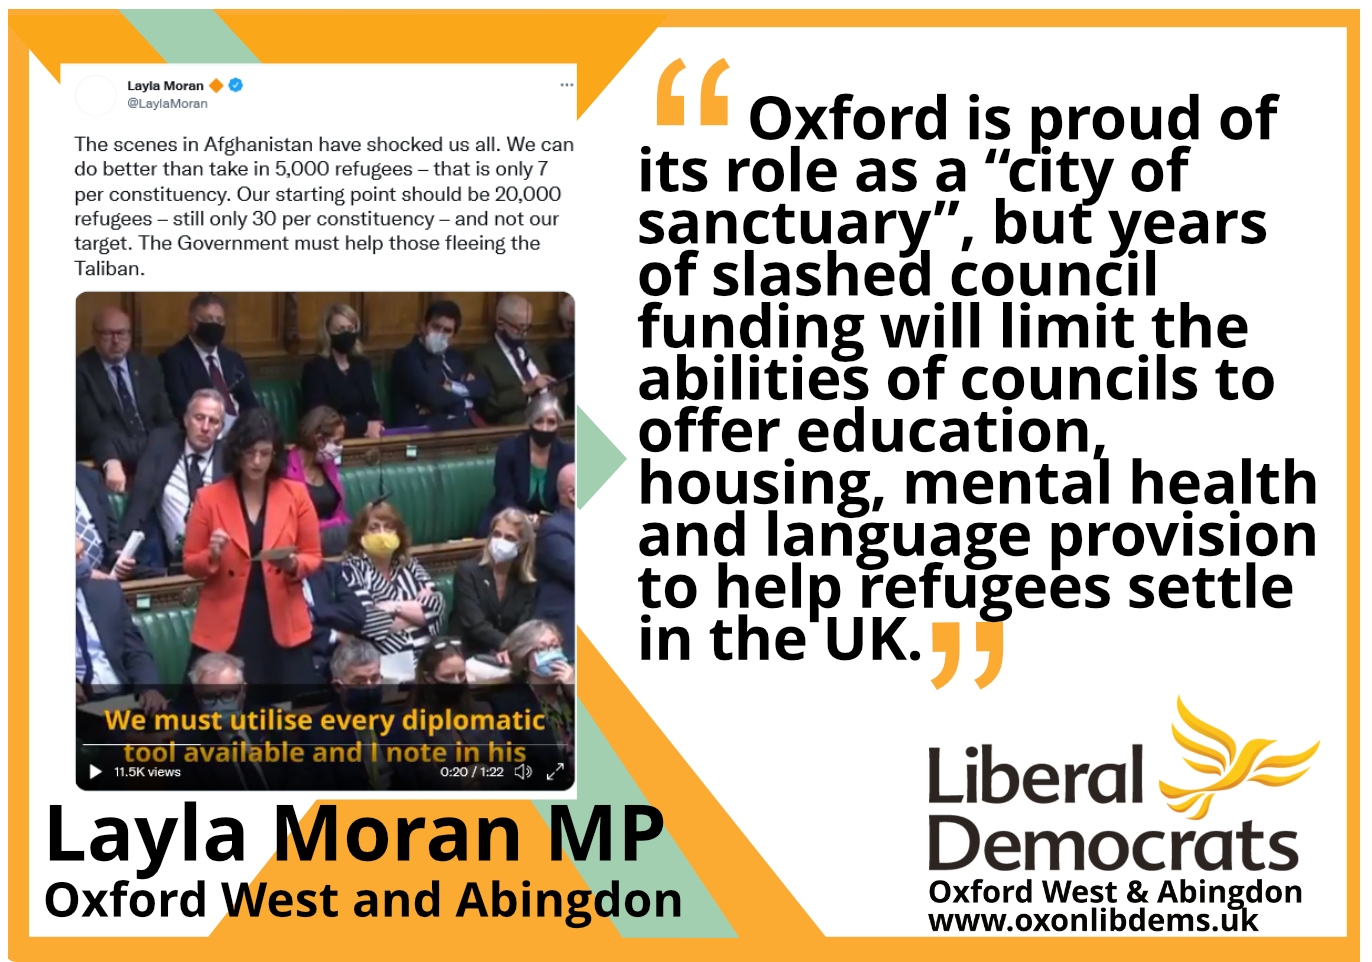 """key_           Oxford is proud of its role as a """"city of sanctuary"""", but years of slashed council funding will limit the abilities of councils to offer education, housing, mental health and language provision to help refugees settle in the UK."""